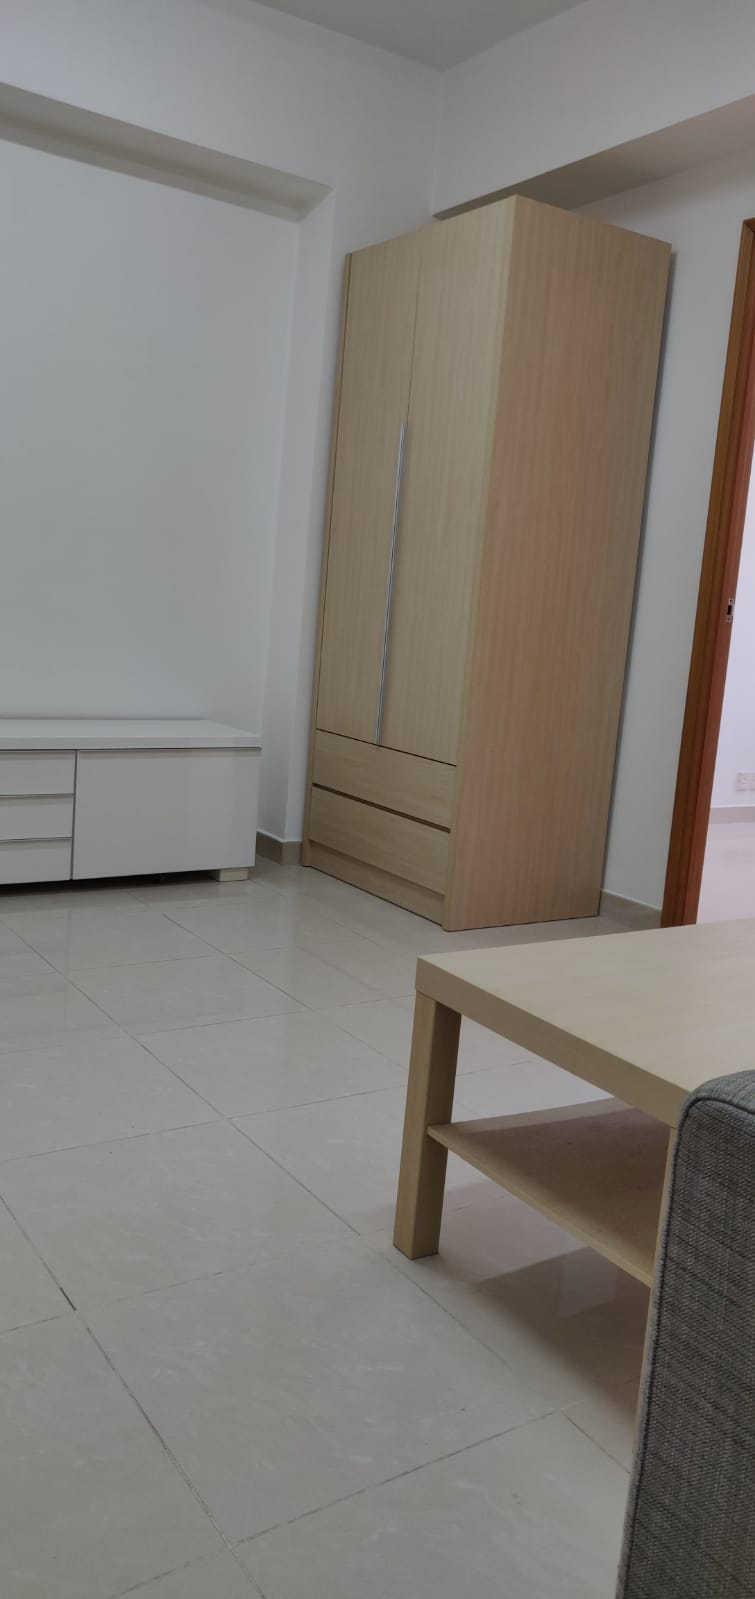 [Wan Chai]  WING TAK MANSION, Lower Floor Flat, 2 rooms 1 toilet